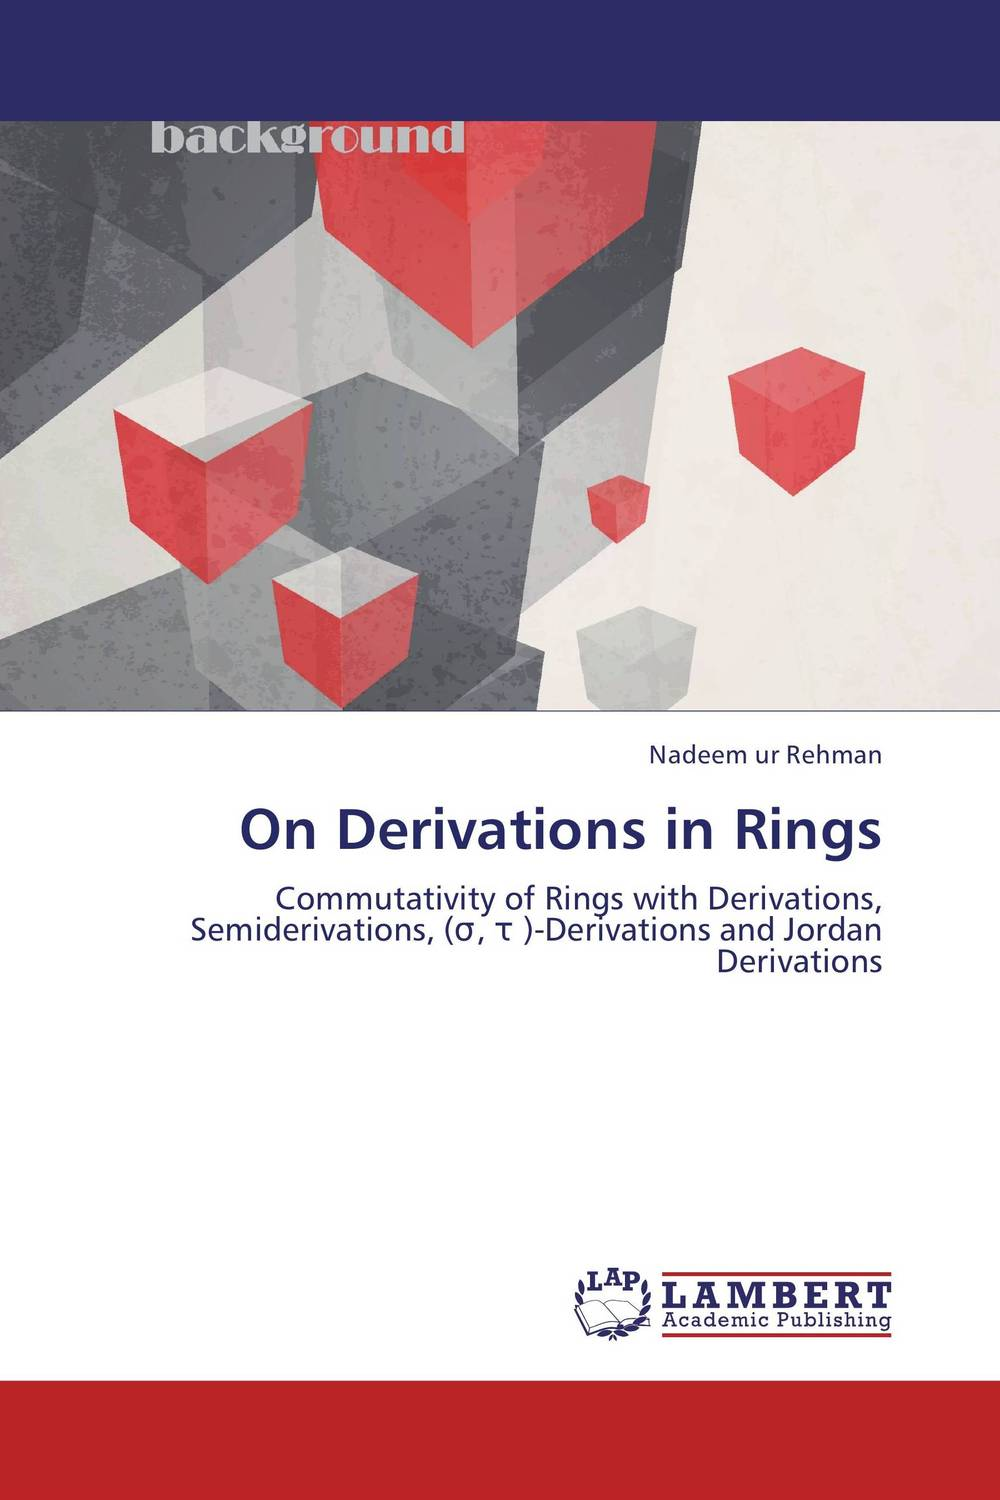 On Derivations in Rings module amenability of banach algebras